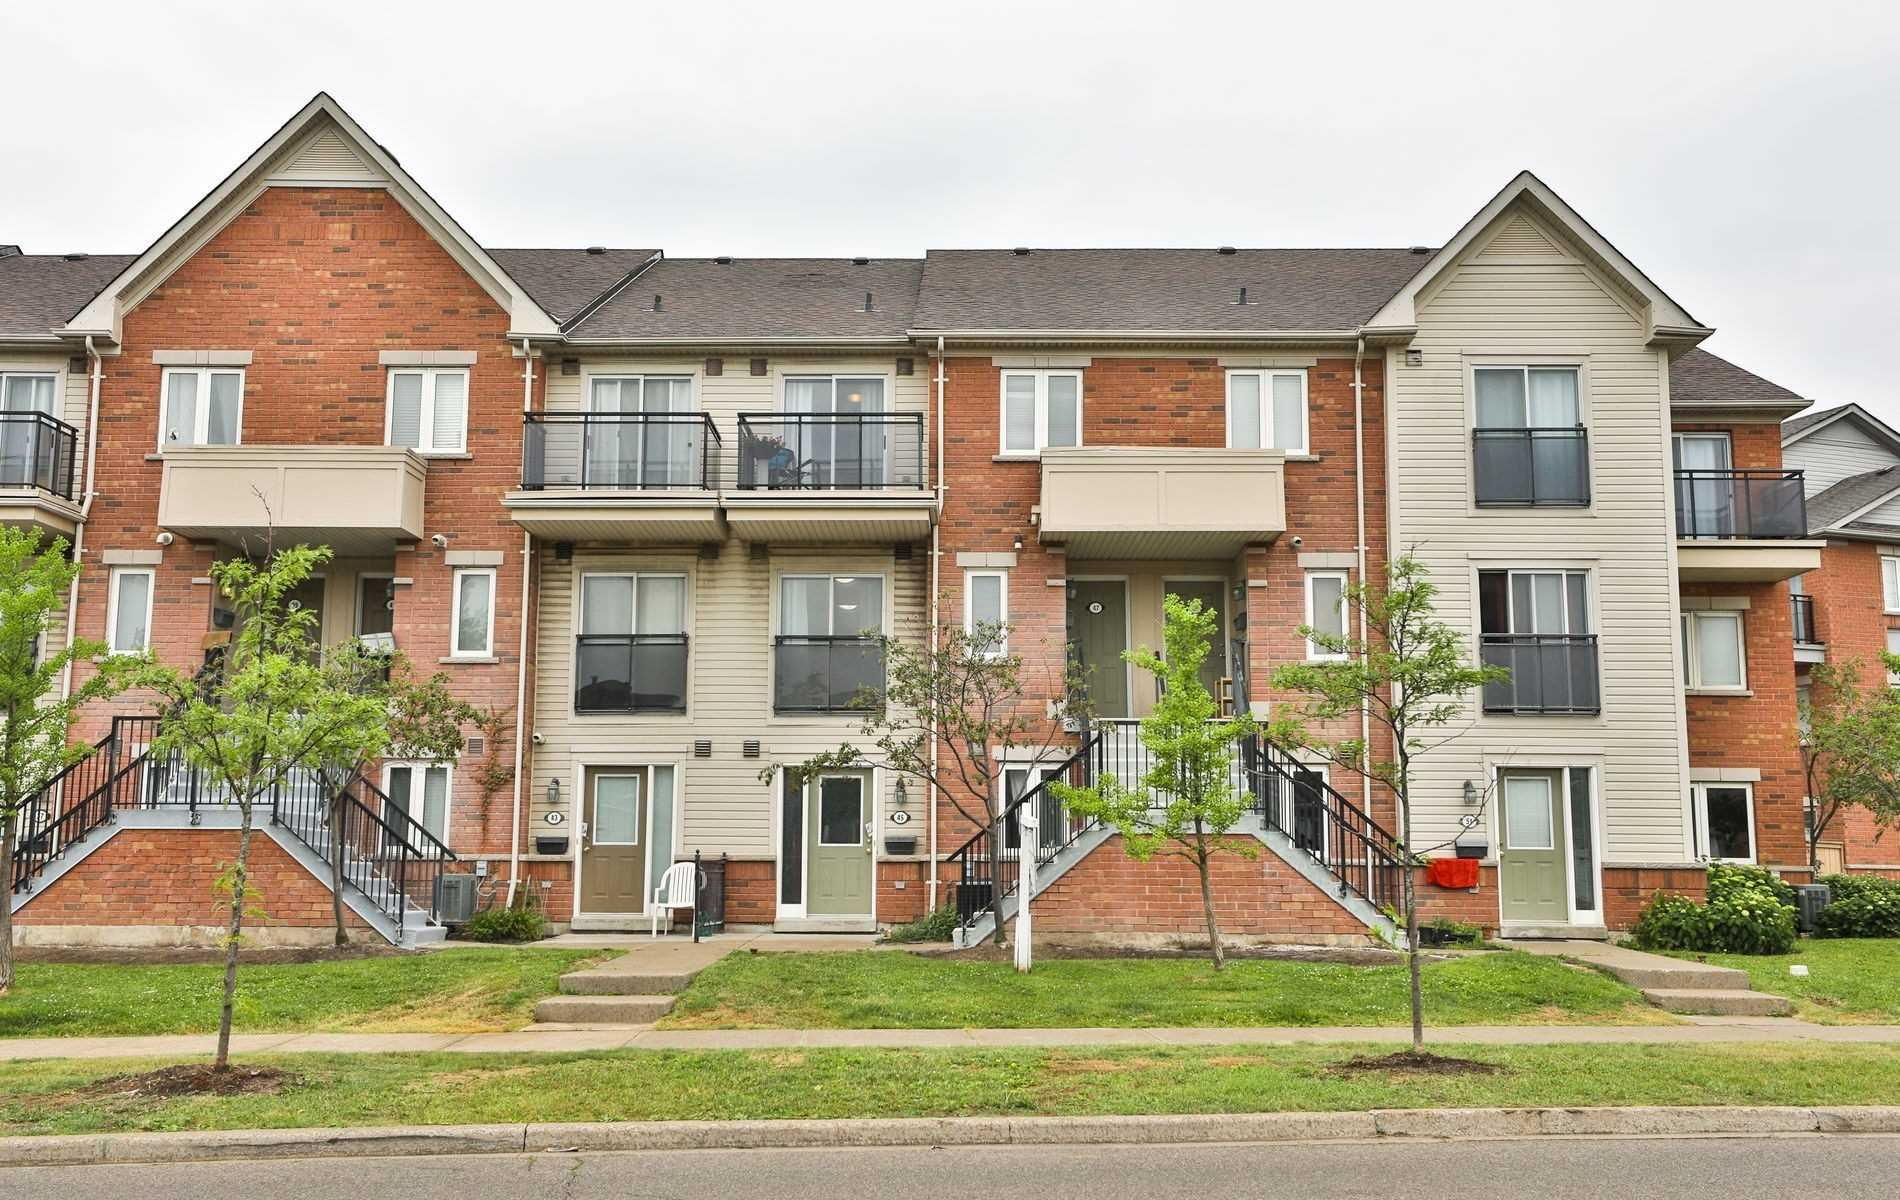 4620 Guildwood Way #47, Mississauga, ON L5R4H4 - MLS#: W5273274